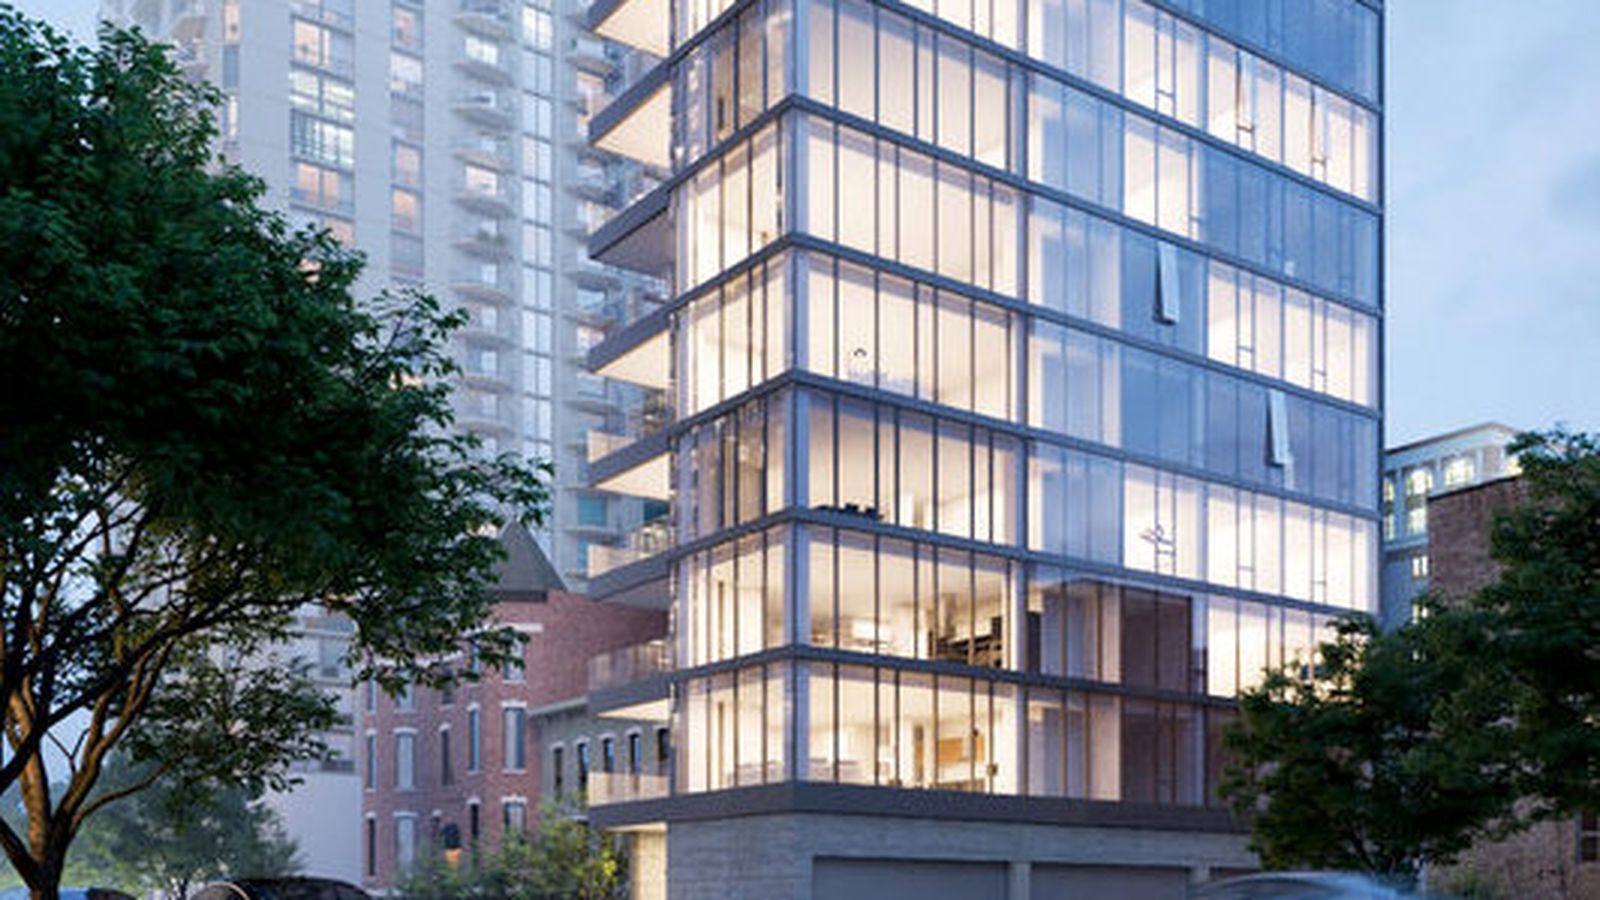 renderings reveal 13 story river north condo development near huron dearborn curbed chicago. Black Bedroom Furniture Sets. Home Design Ideas